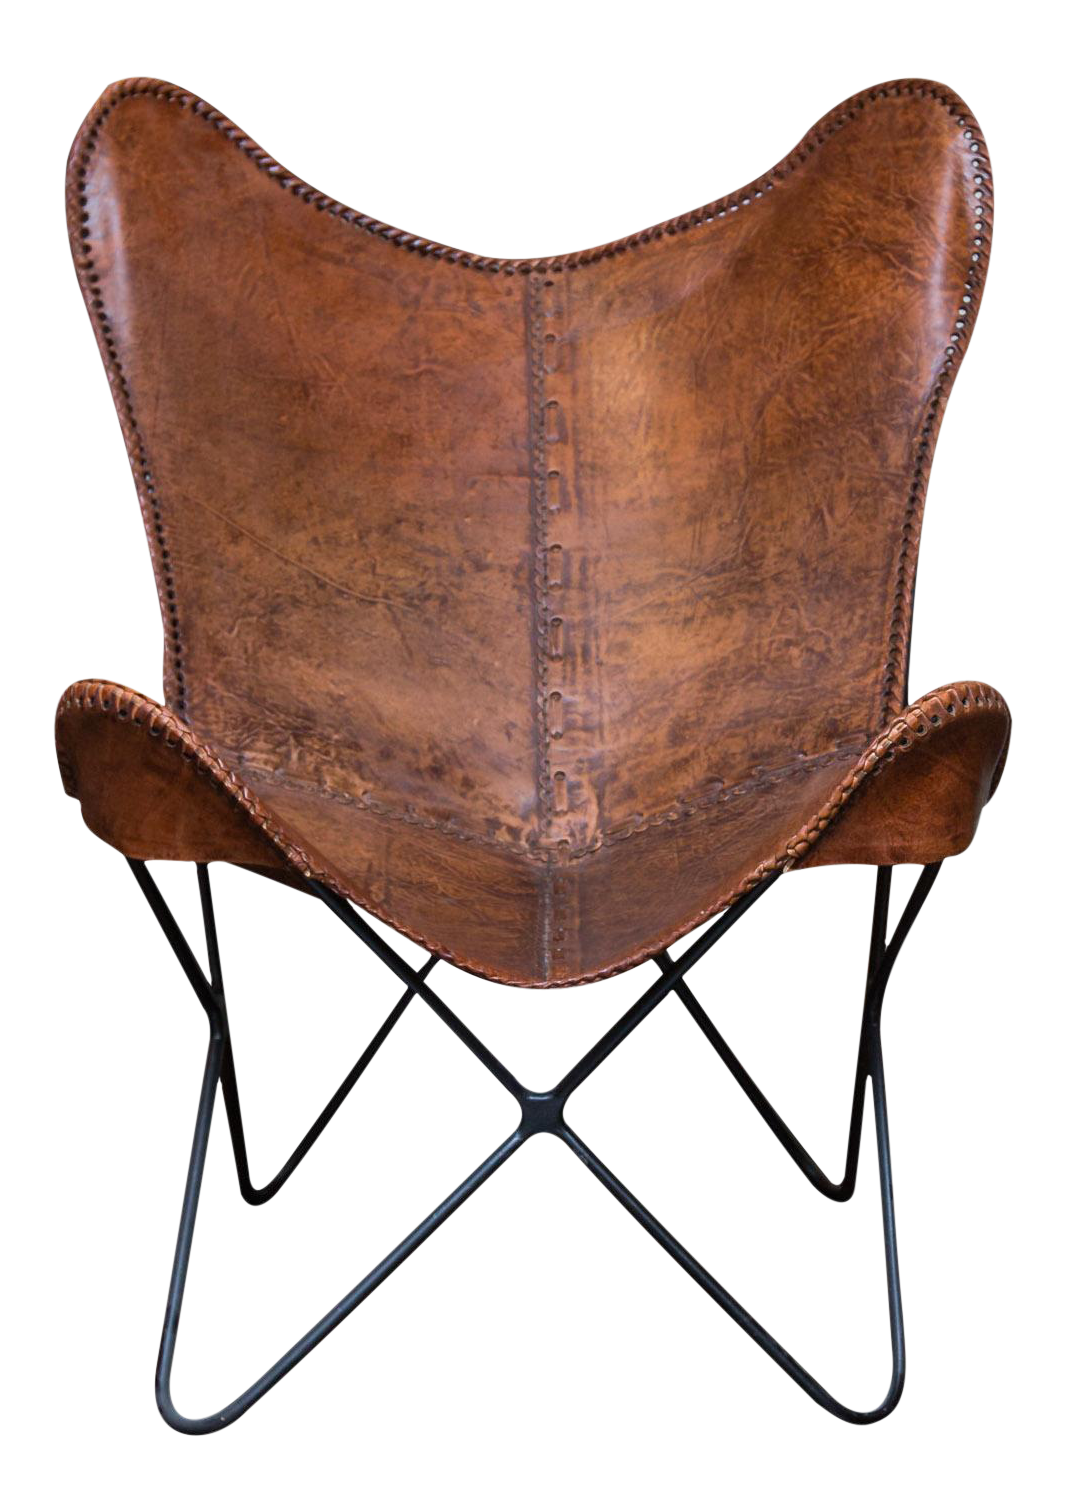 vintage leather butterfly chair chairish. Black Bedroom Furniture Sets. Home Design Ideas